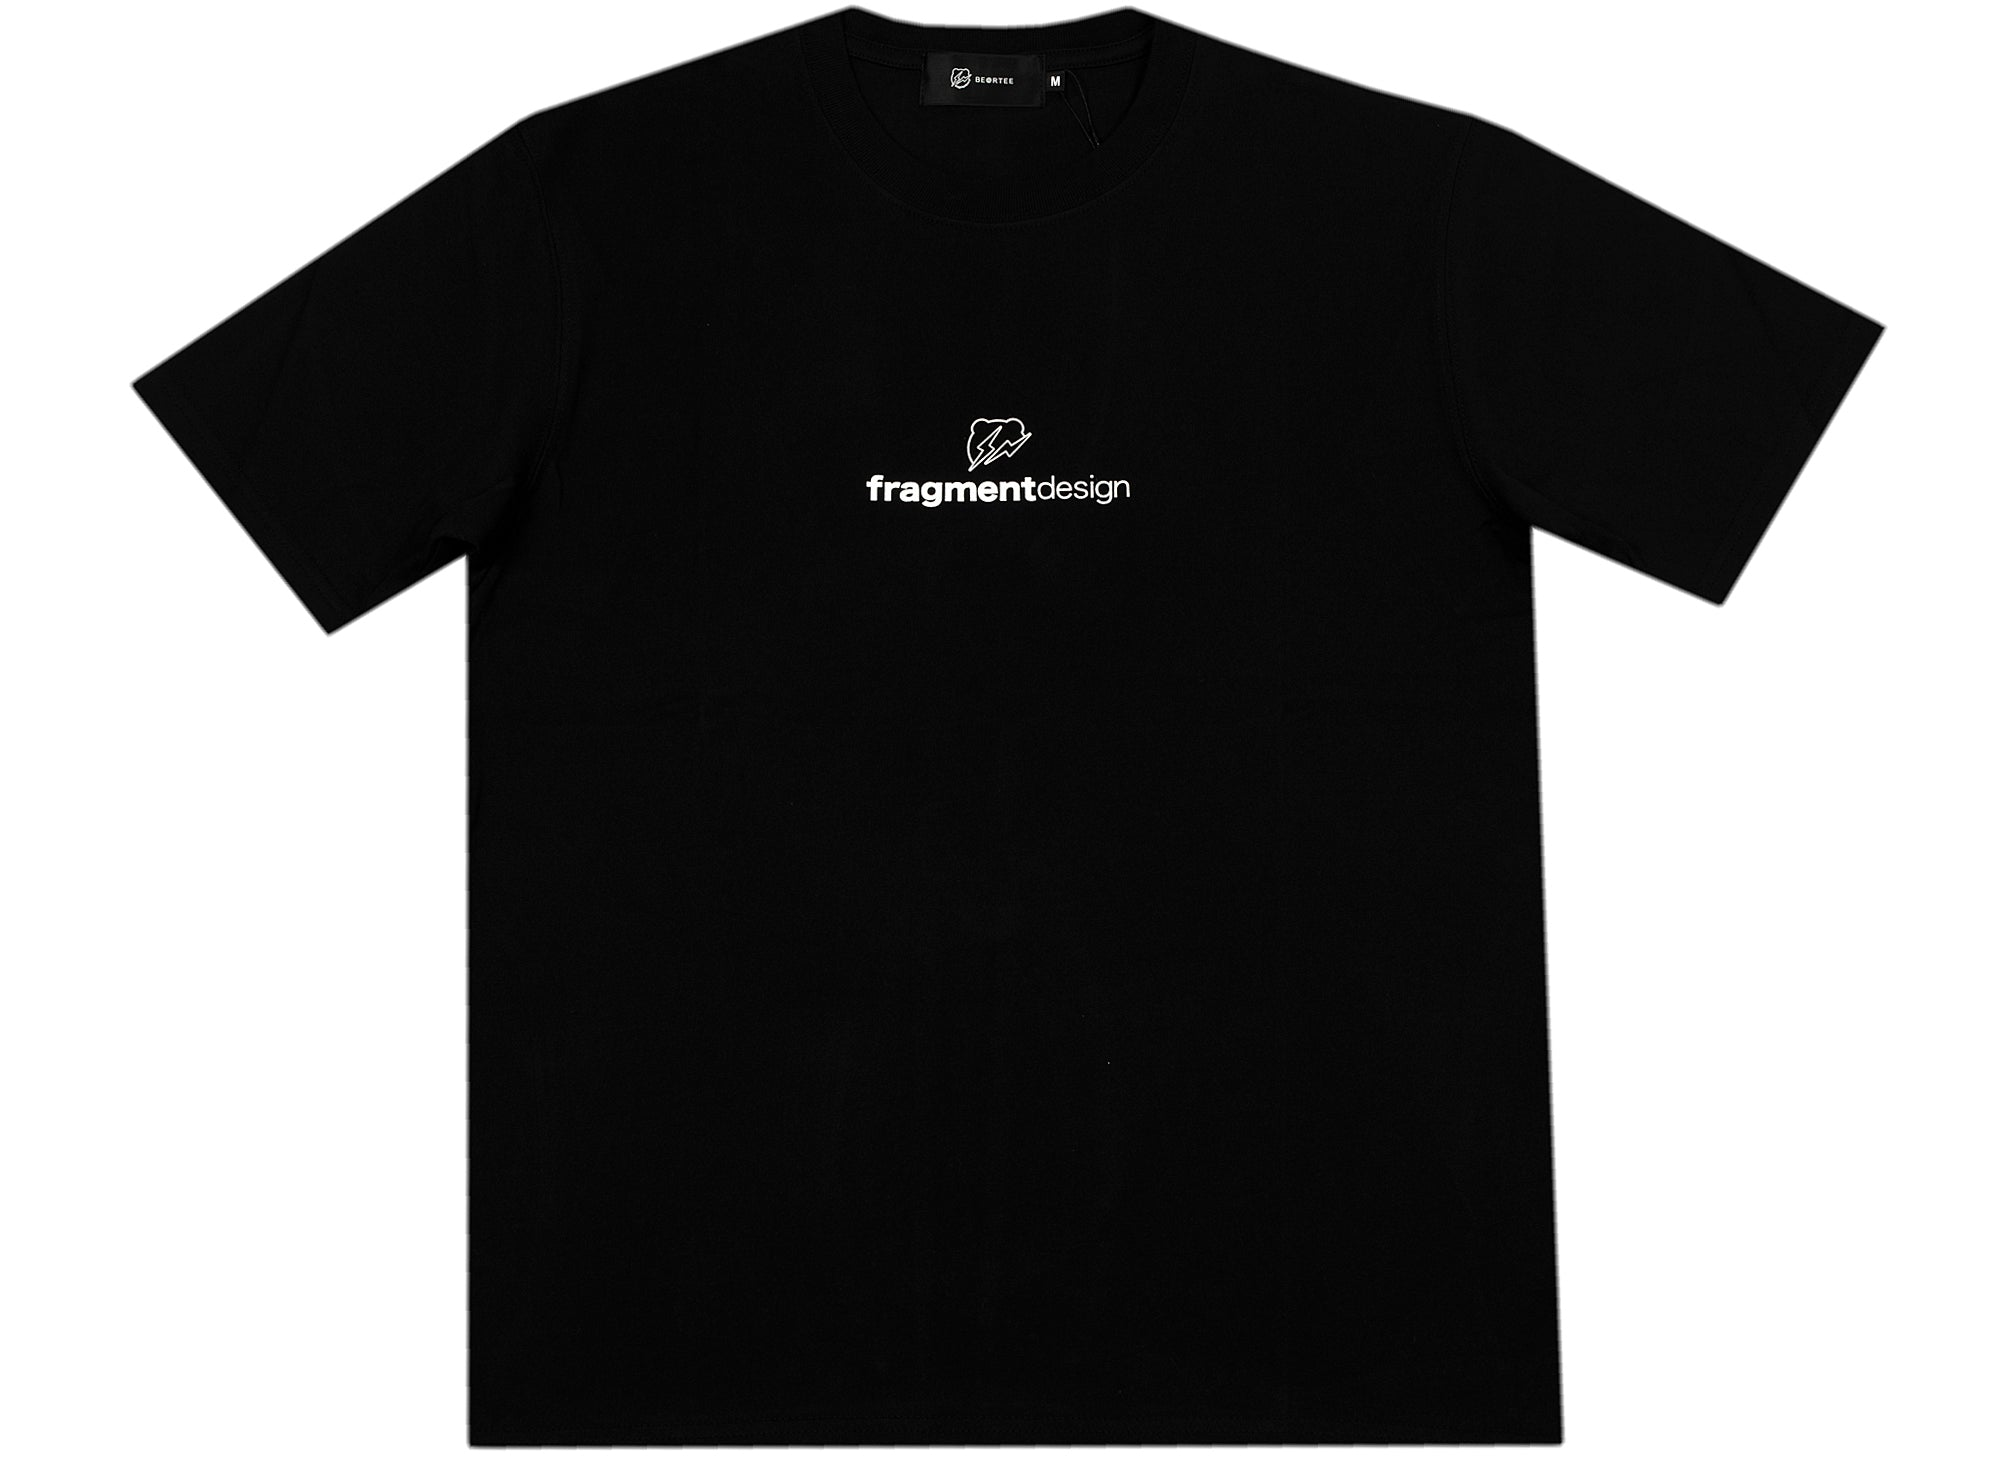 Medicom Toy Be@rtree x fragmentdesign Logo Tee in Black xld